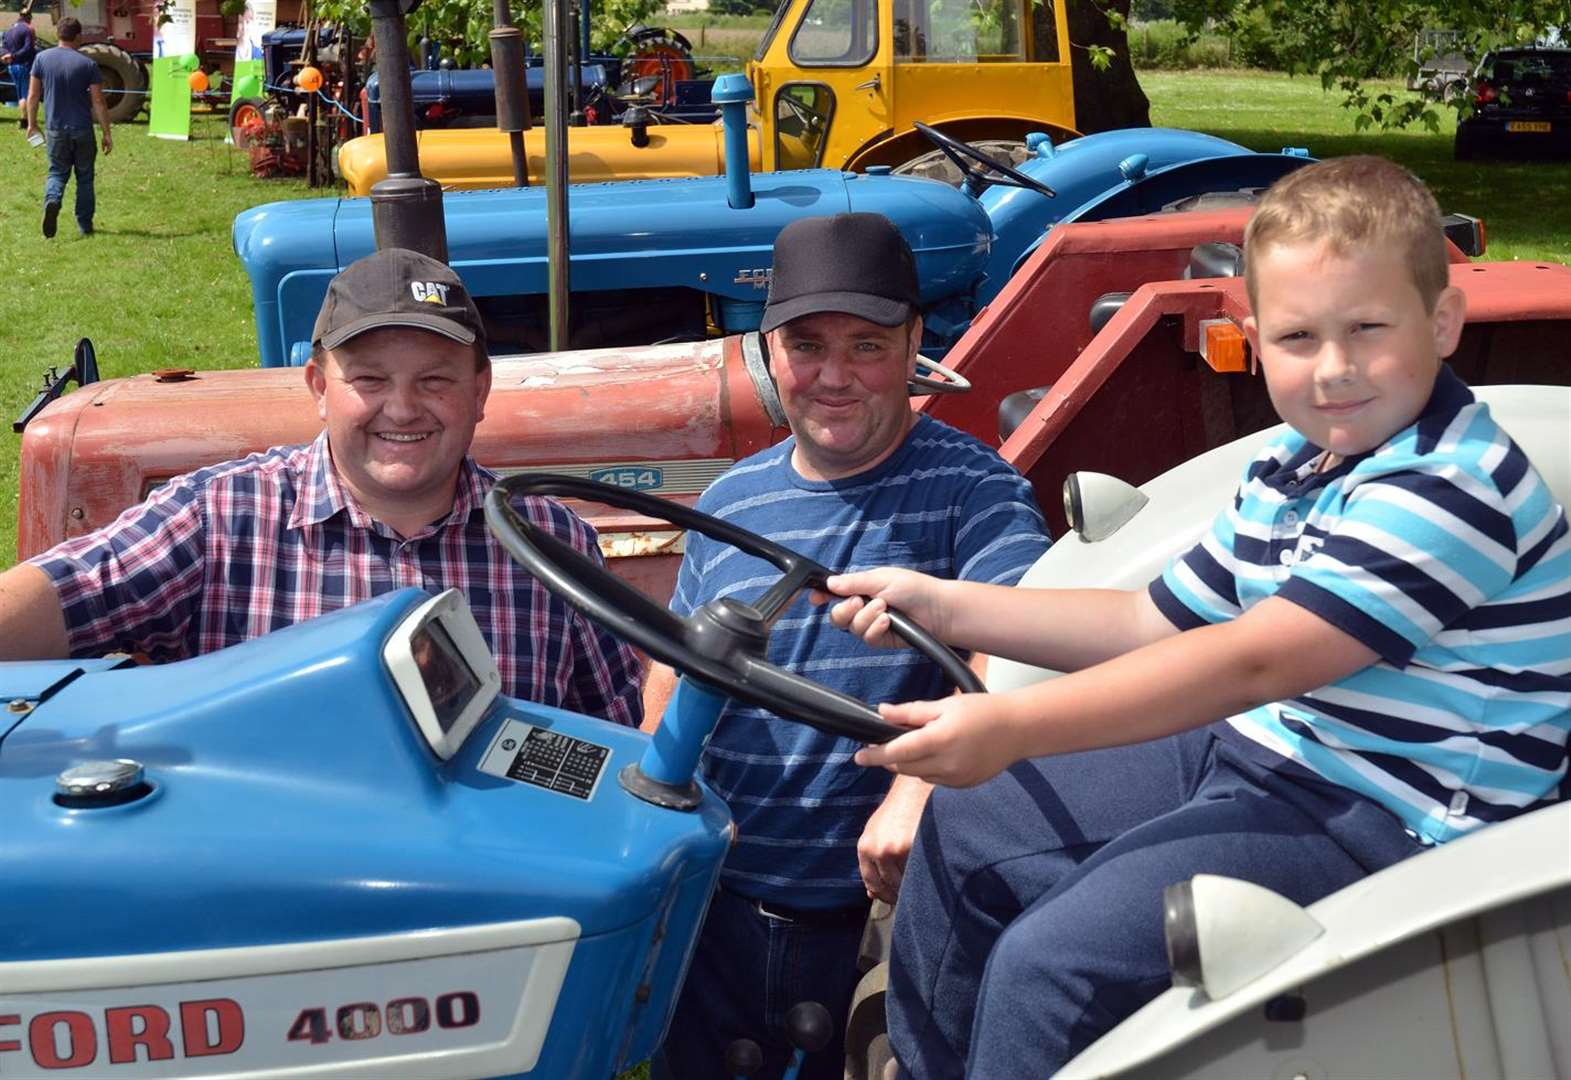 GALLERY: Crowd fills field for Gosberton fair.